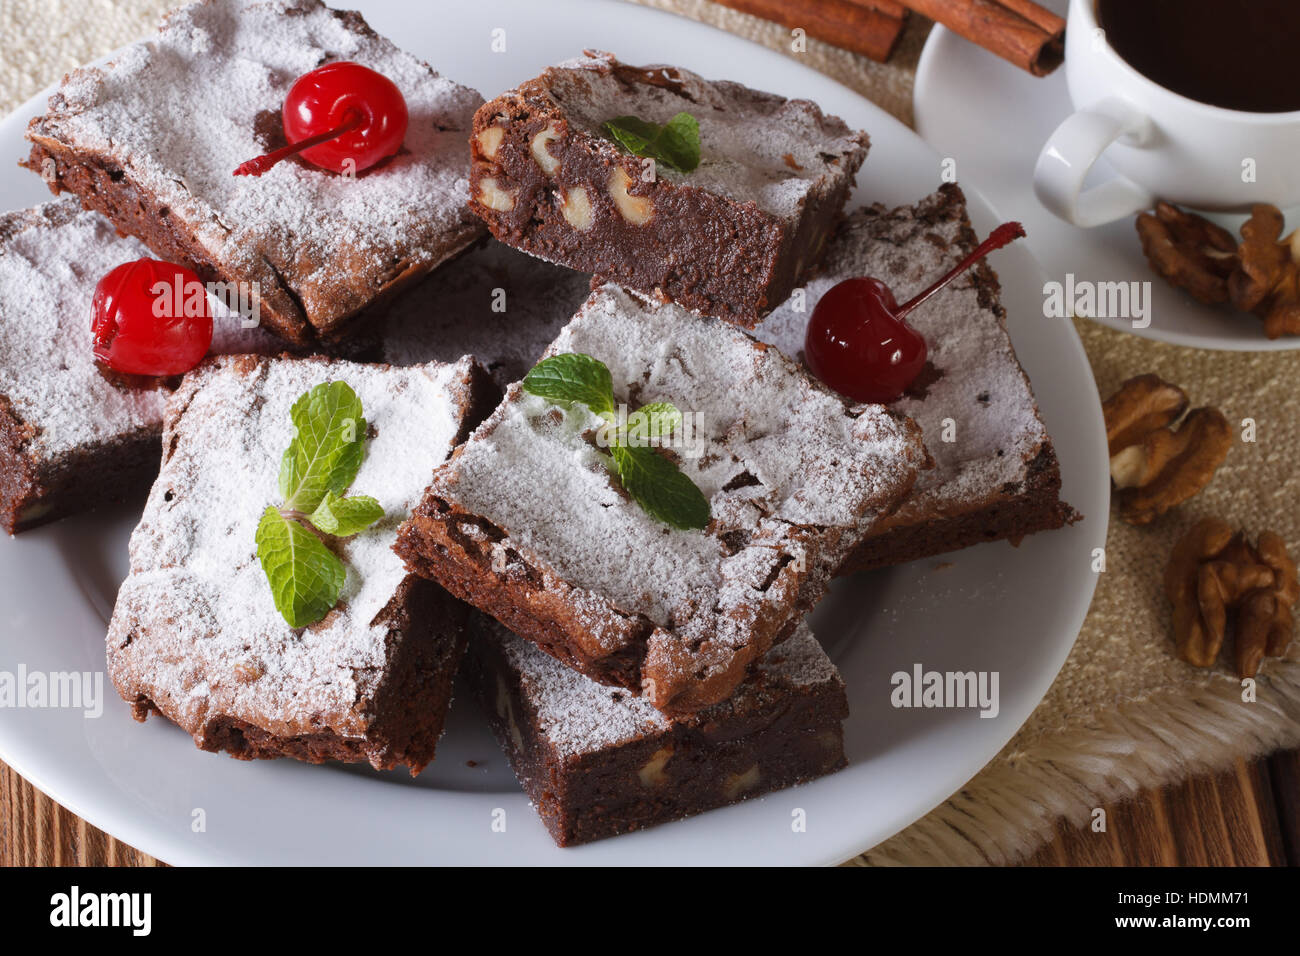 chocolate cake brownie with walnuts and coffee. Horizontal close-up Stock Photo